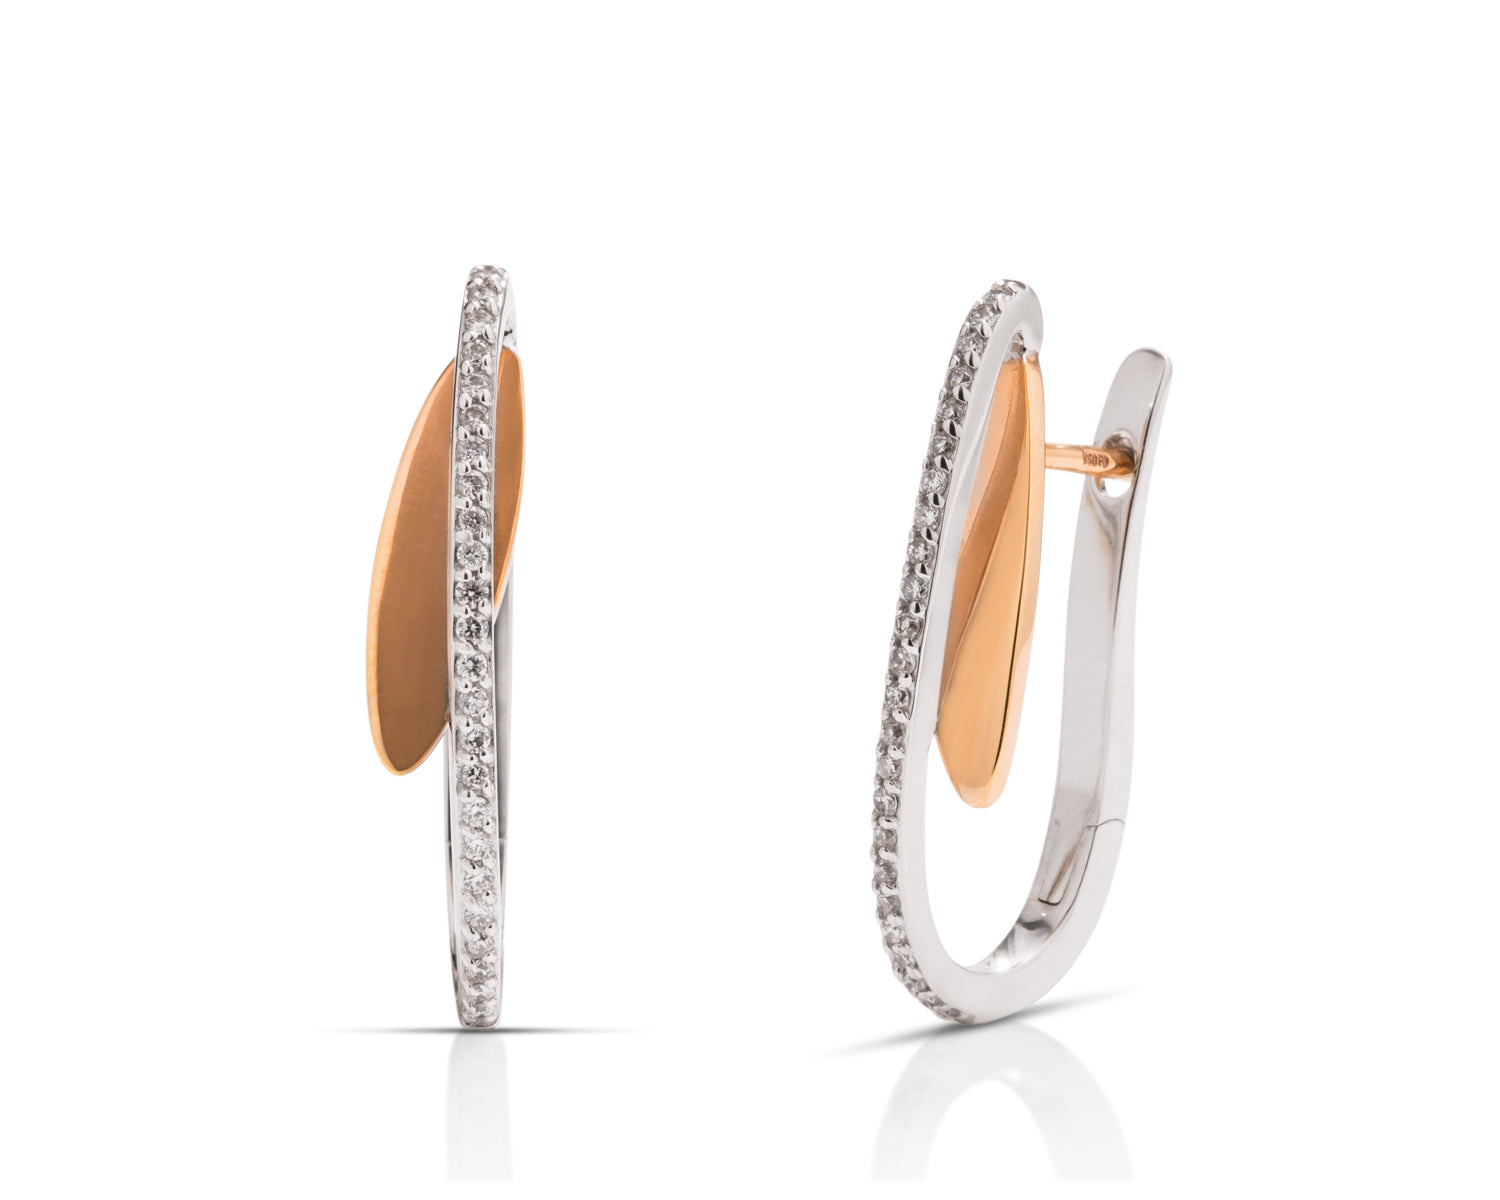 18k White & Rose Gold Diamond Earrings - Charles Koll Jewellers